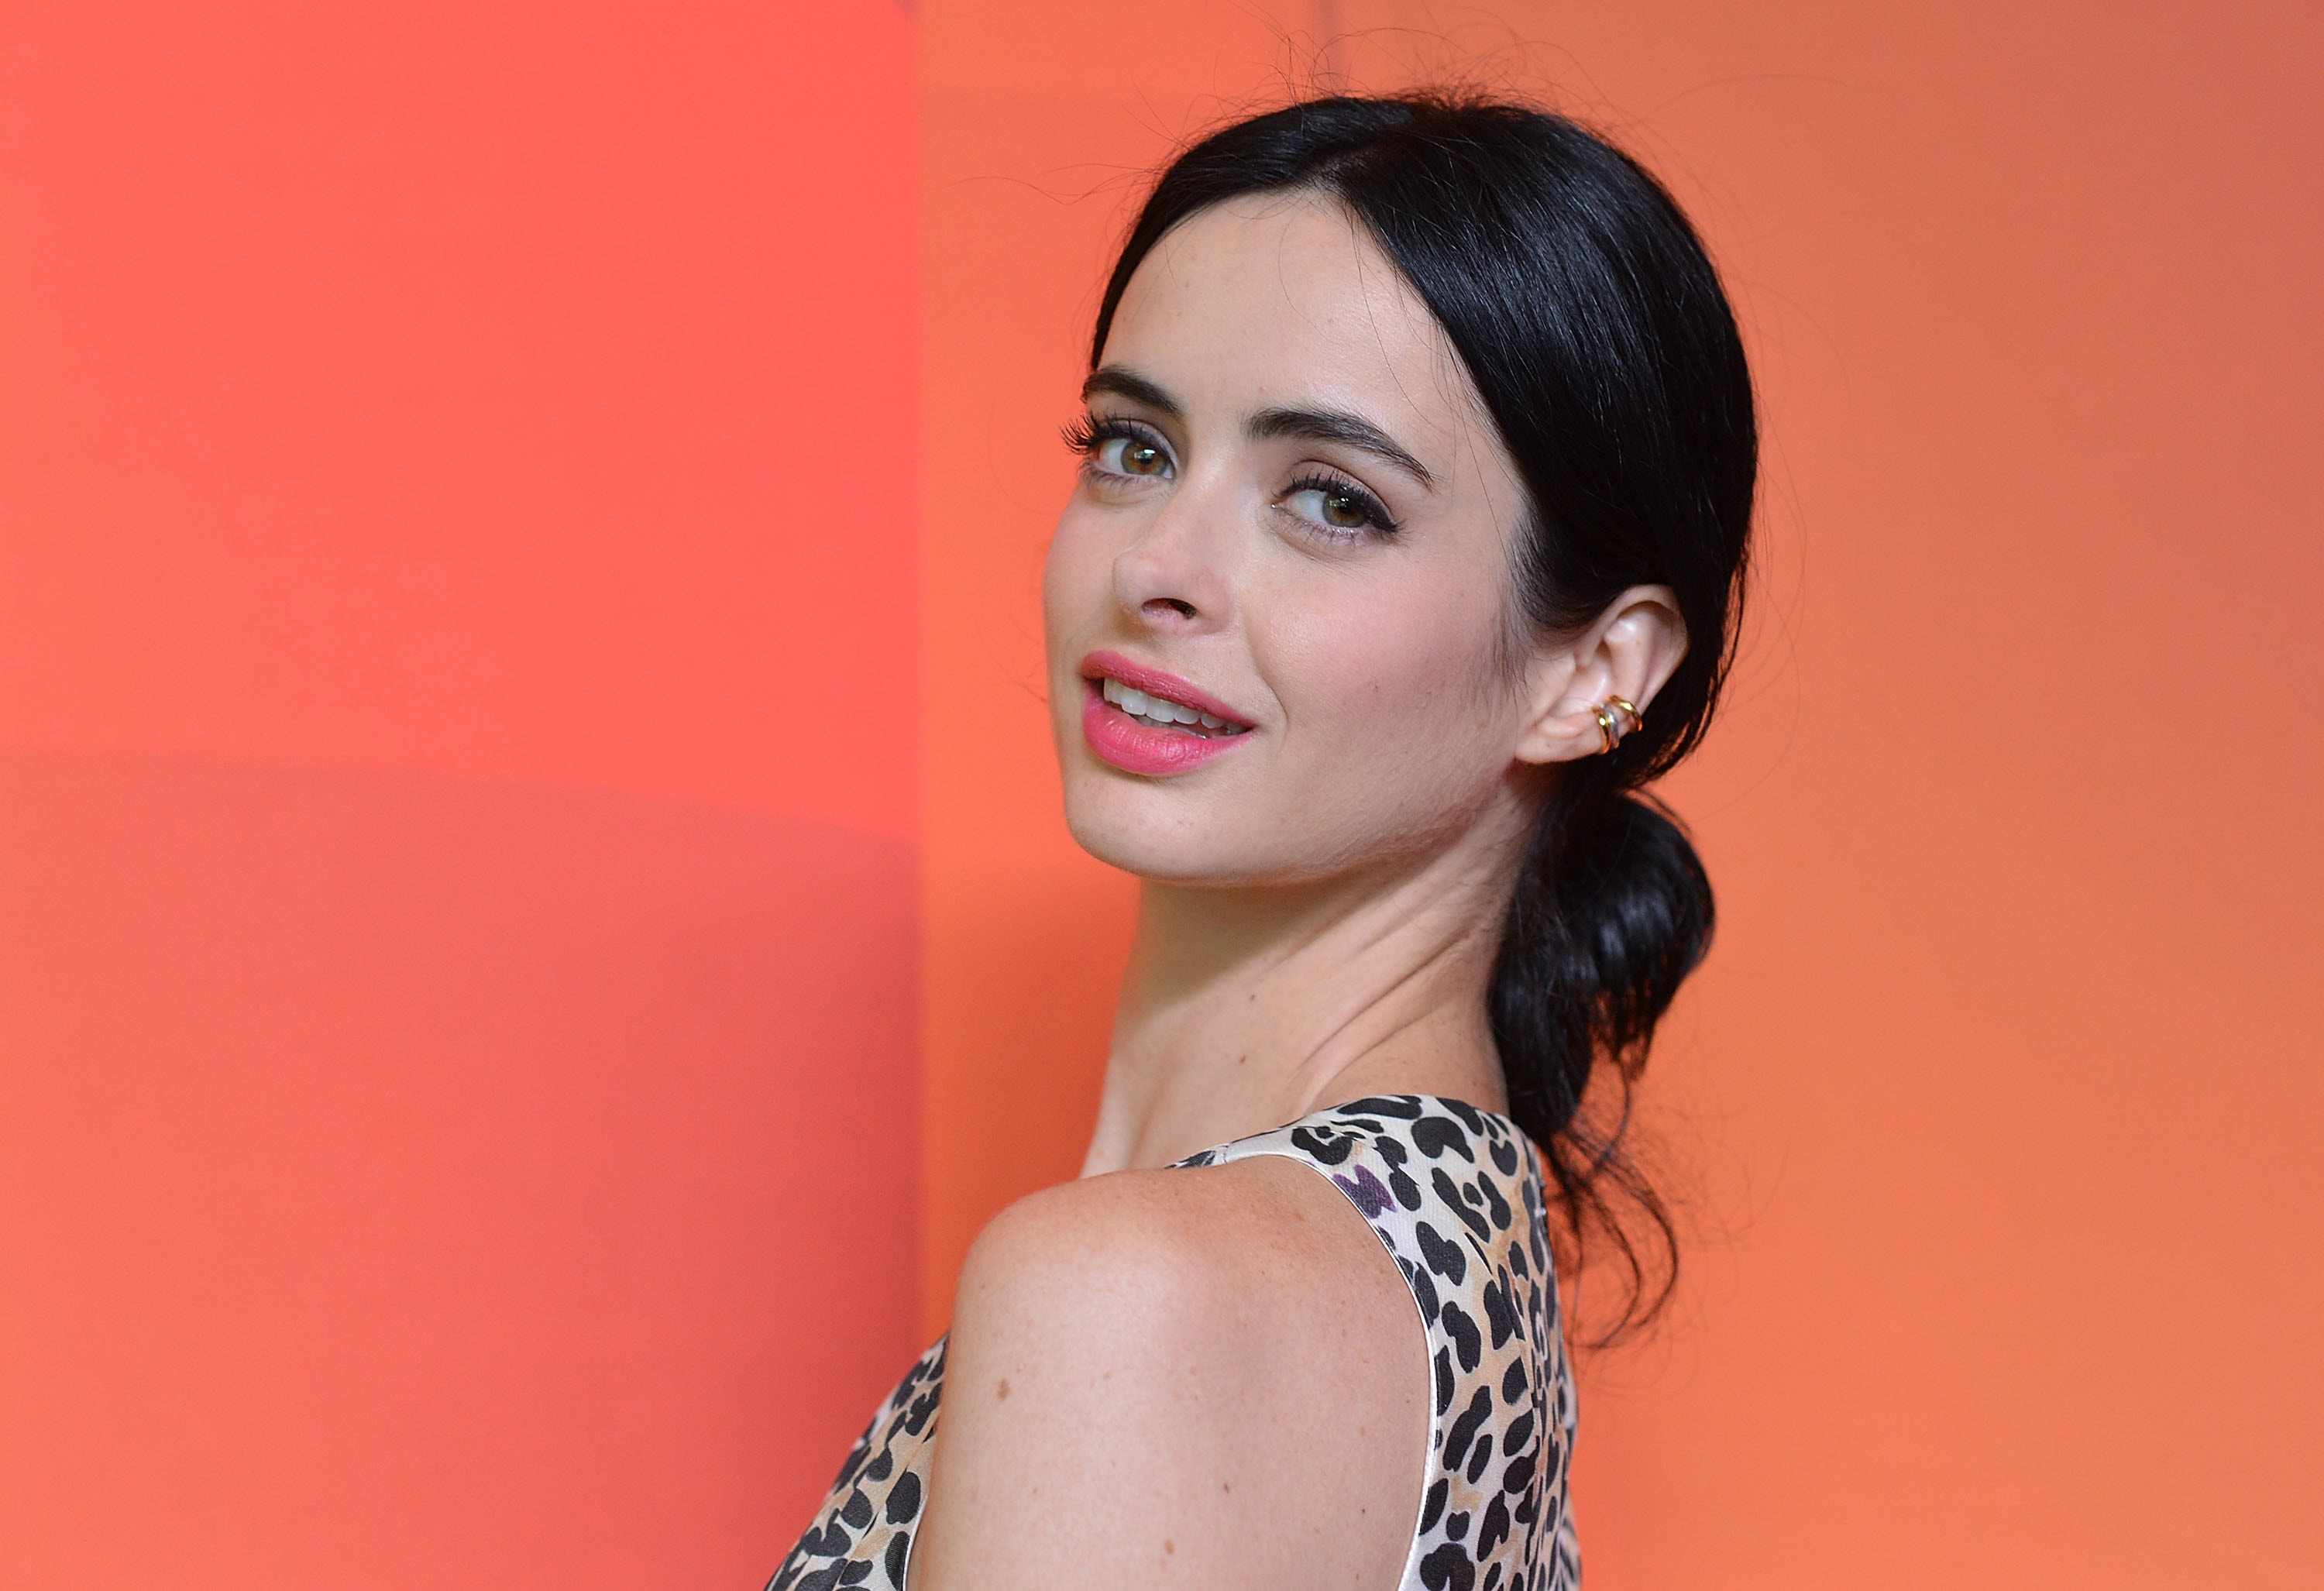 NEW YORK, NY - MAY 12:  Actress Krysten Ritter attends the 2014 NBC Upfront Presentation at The Jacob K. Javits Convention Center on May 12, 2014 in New York City.  (Photo by Slaven Vlasic/Getty Images)